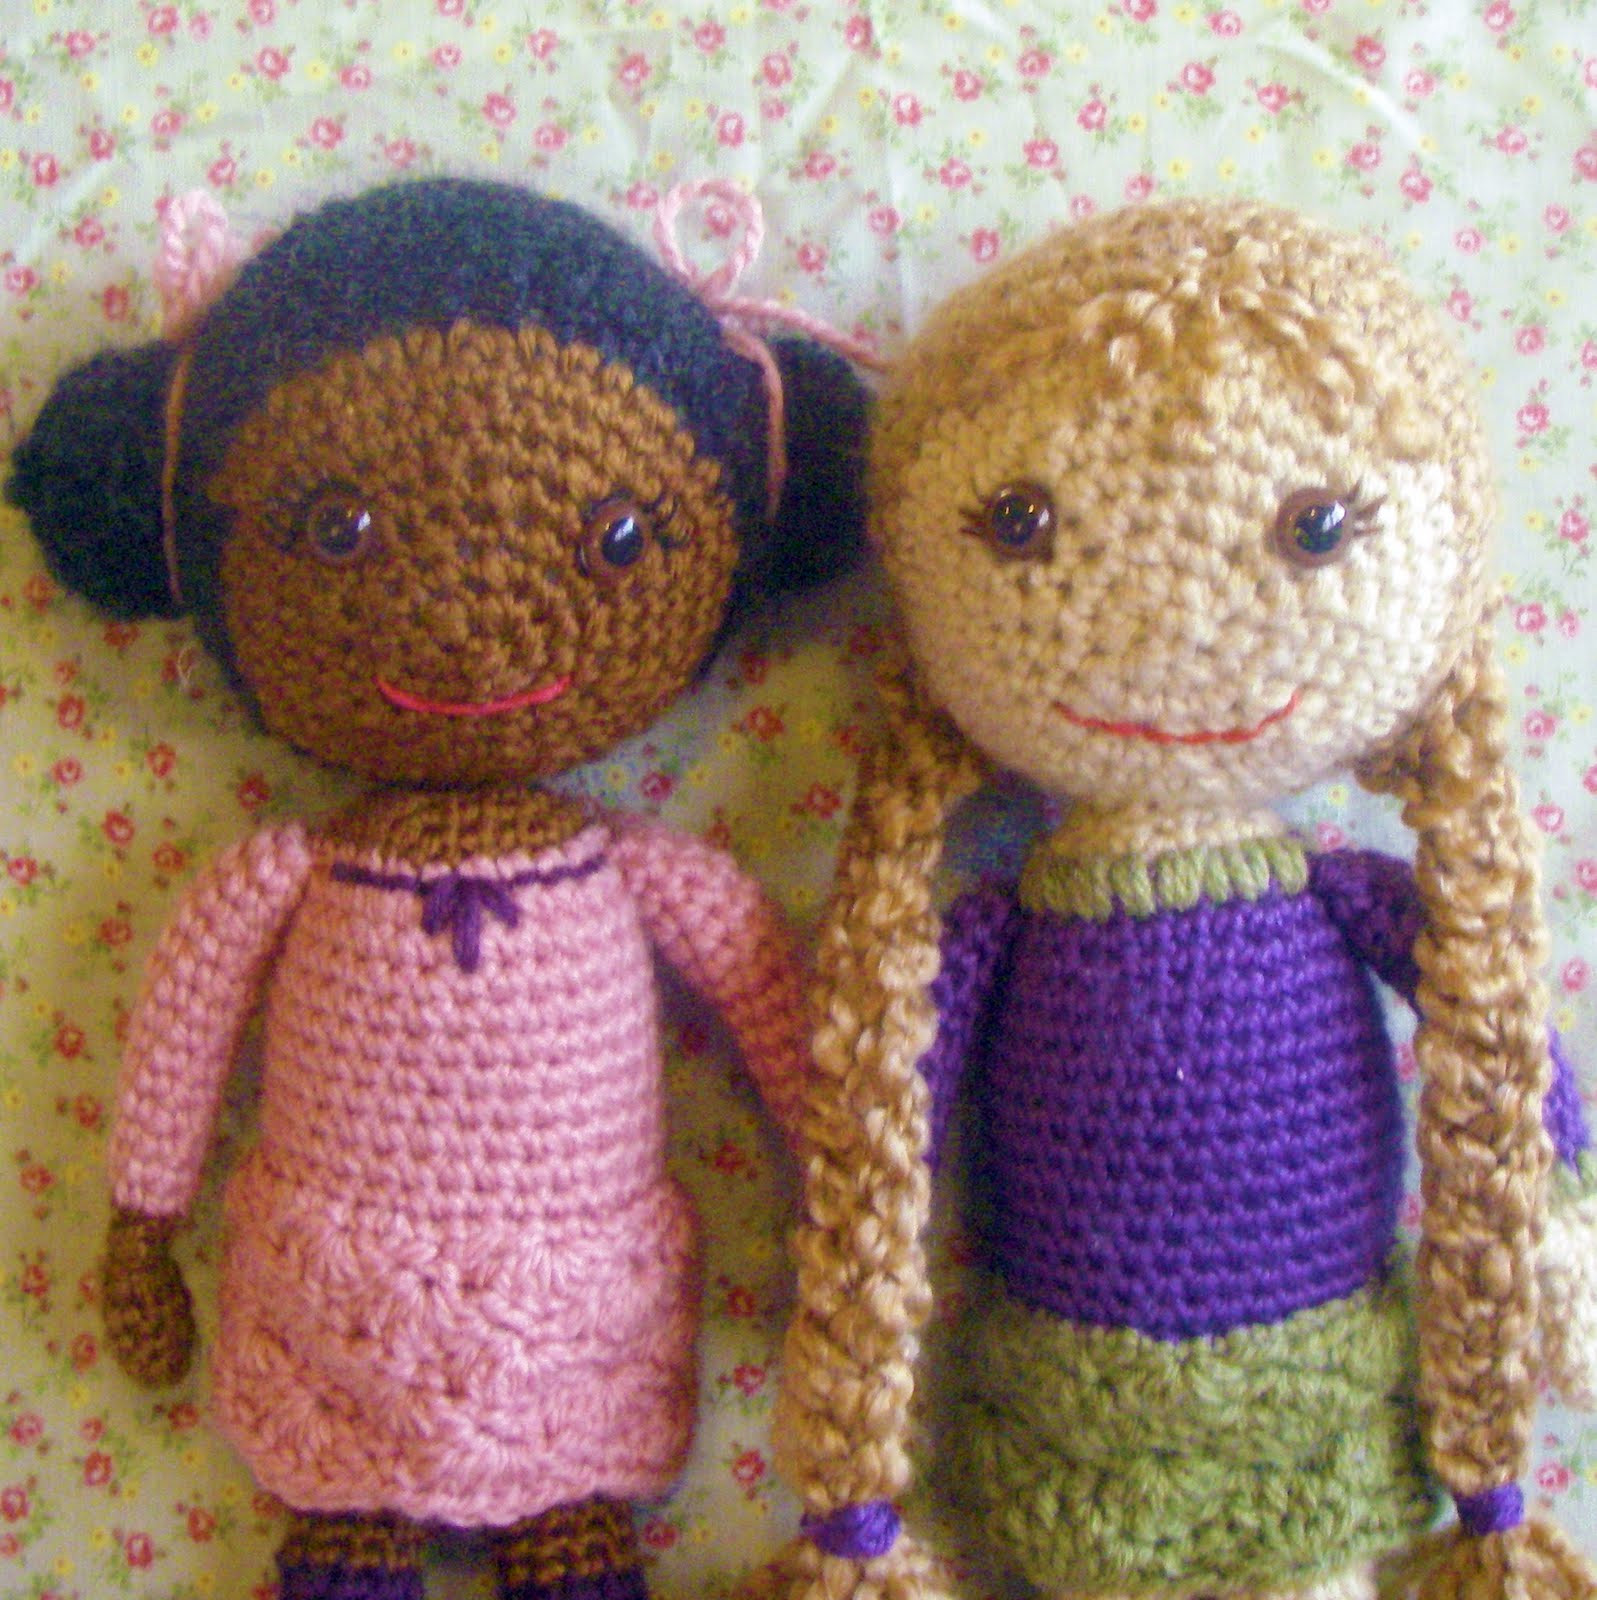 "Doll Patterns Inspirational 12"" Doll Crochet Pattern Mamacheemamachee Of Doll Patterns Best Of Gingermelon Dolls My Felt Doll Knitted Outfit Patterns"